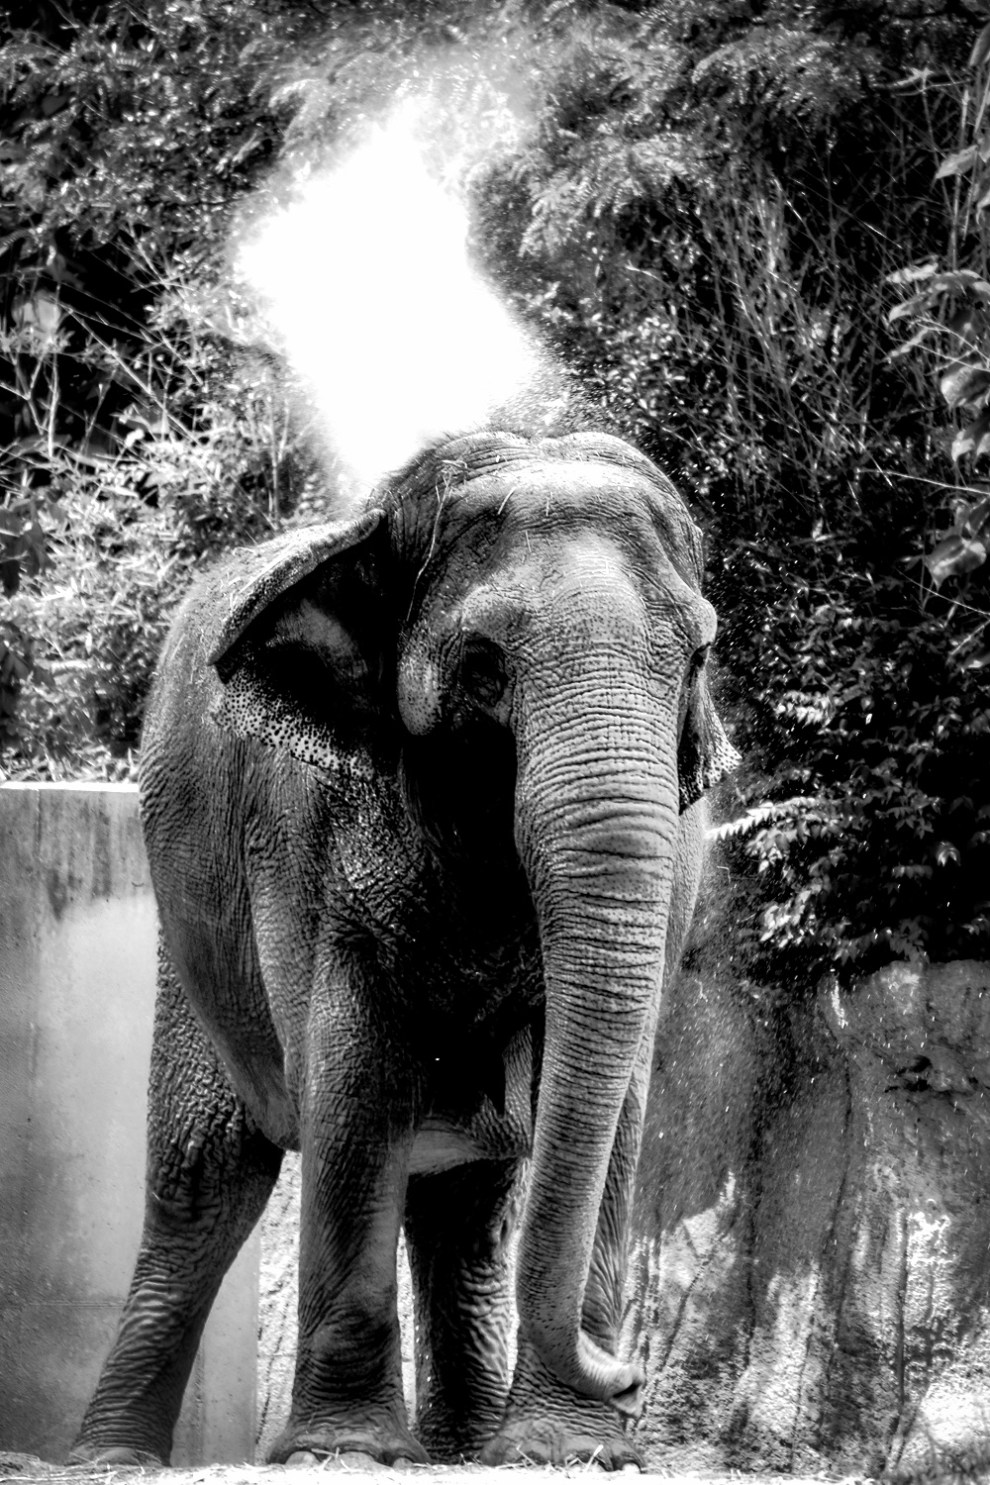 Elephant at St. Louis Zoo